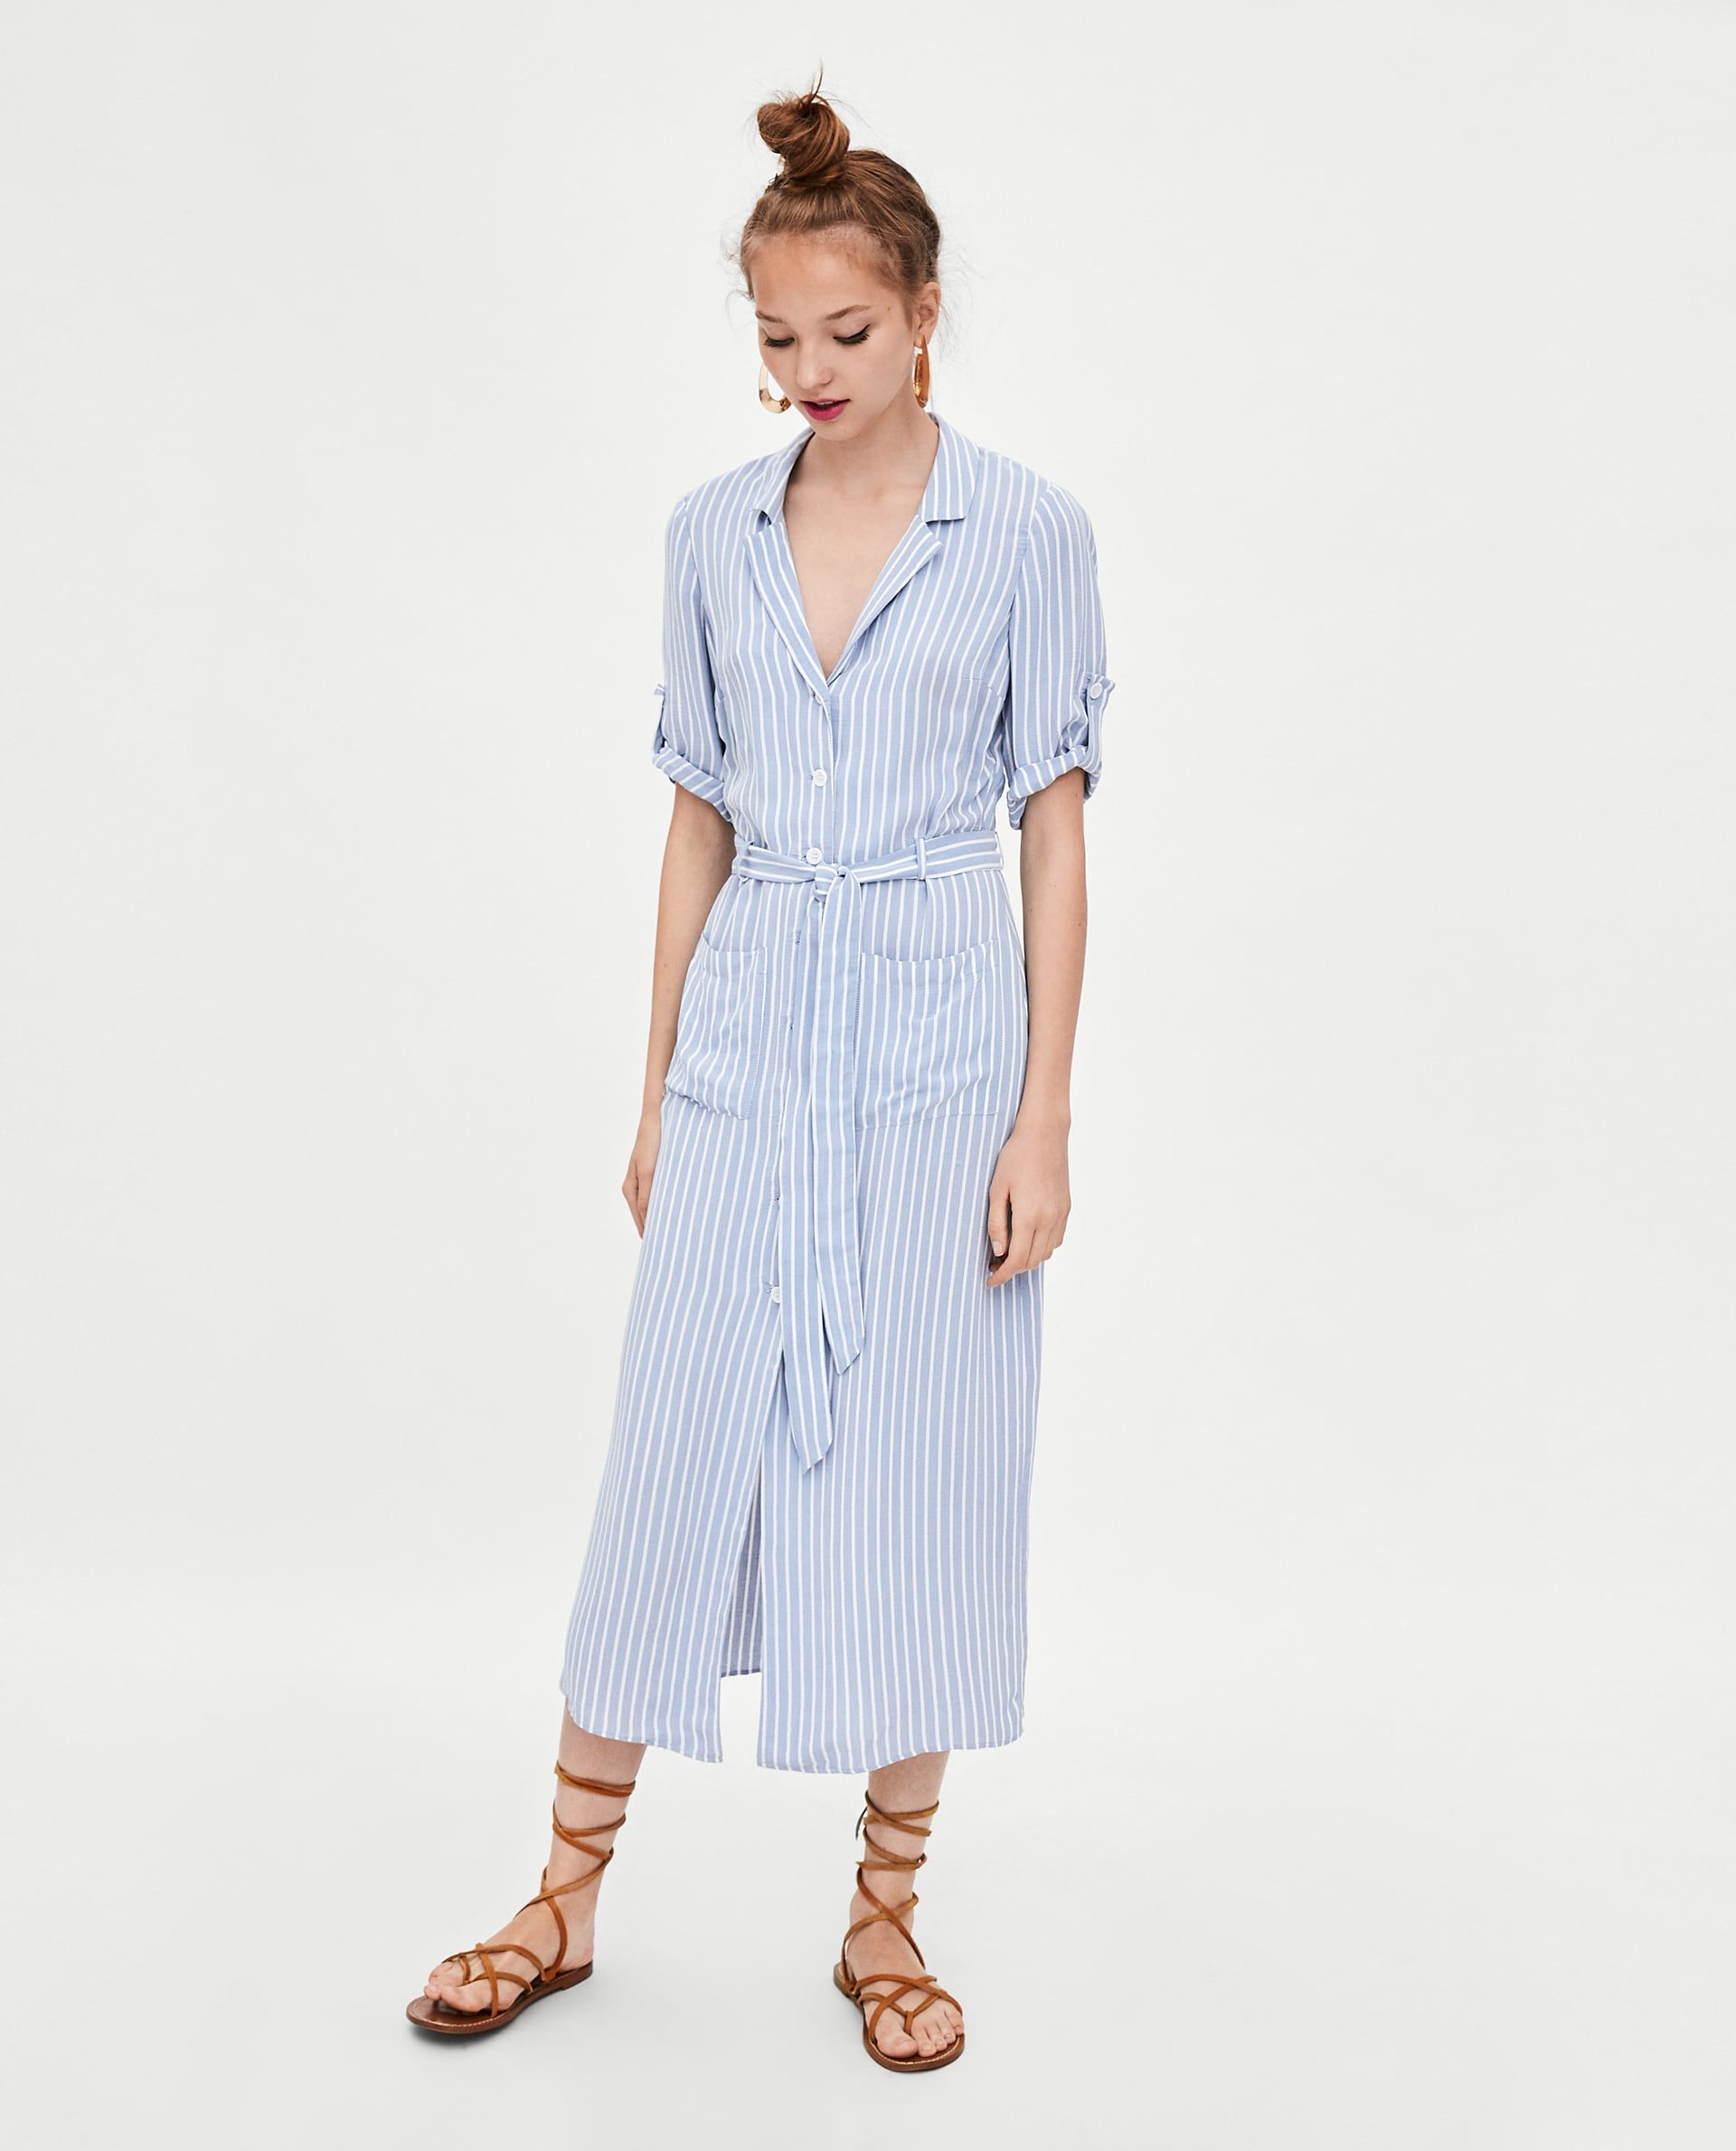 7aebc46bbd9de Image 1 of STRIPED SHIRT DRESS from Zara